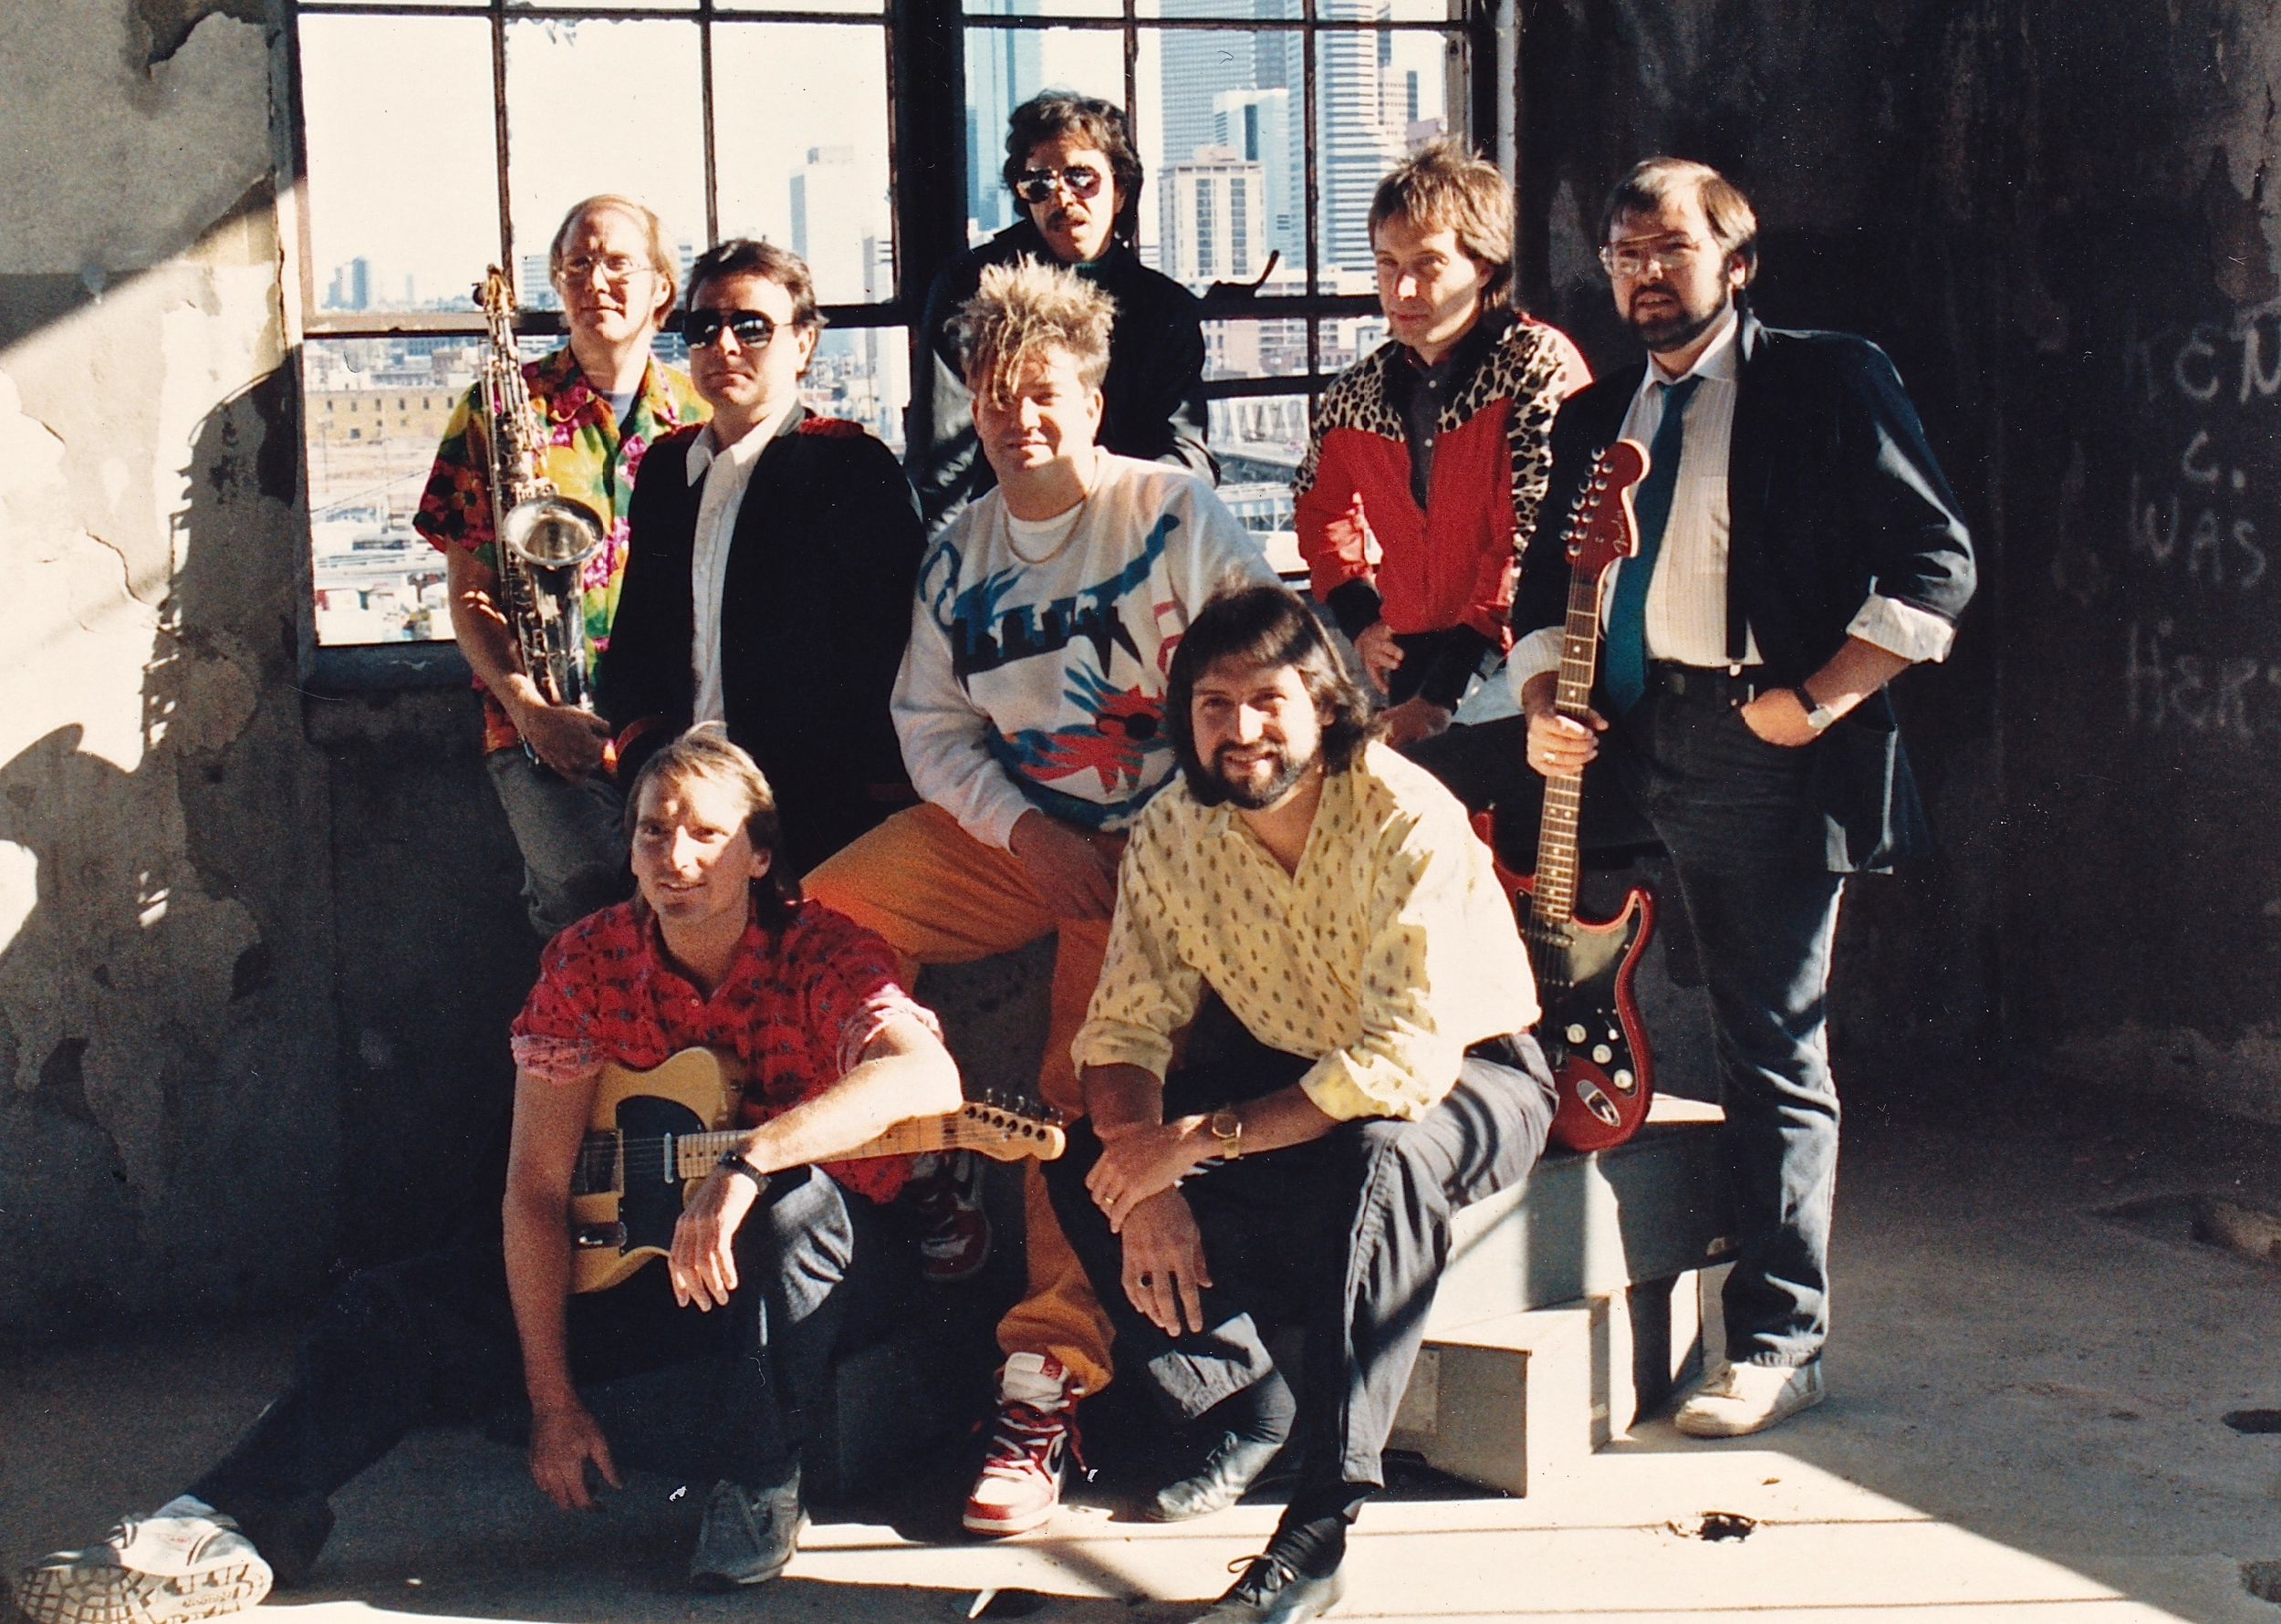 1985 Kings Promo Phot shoot Denver.jpg